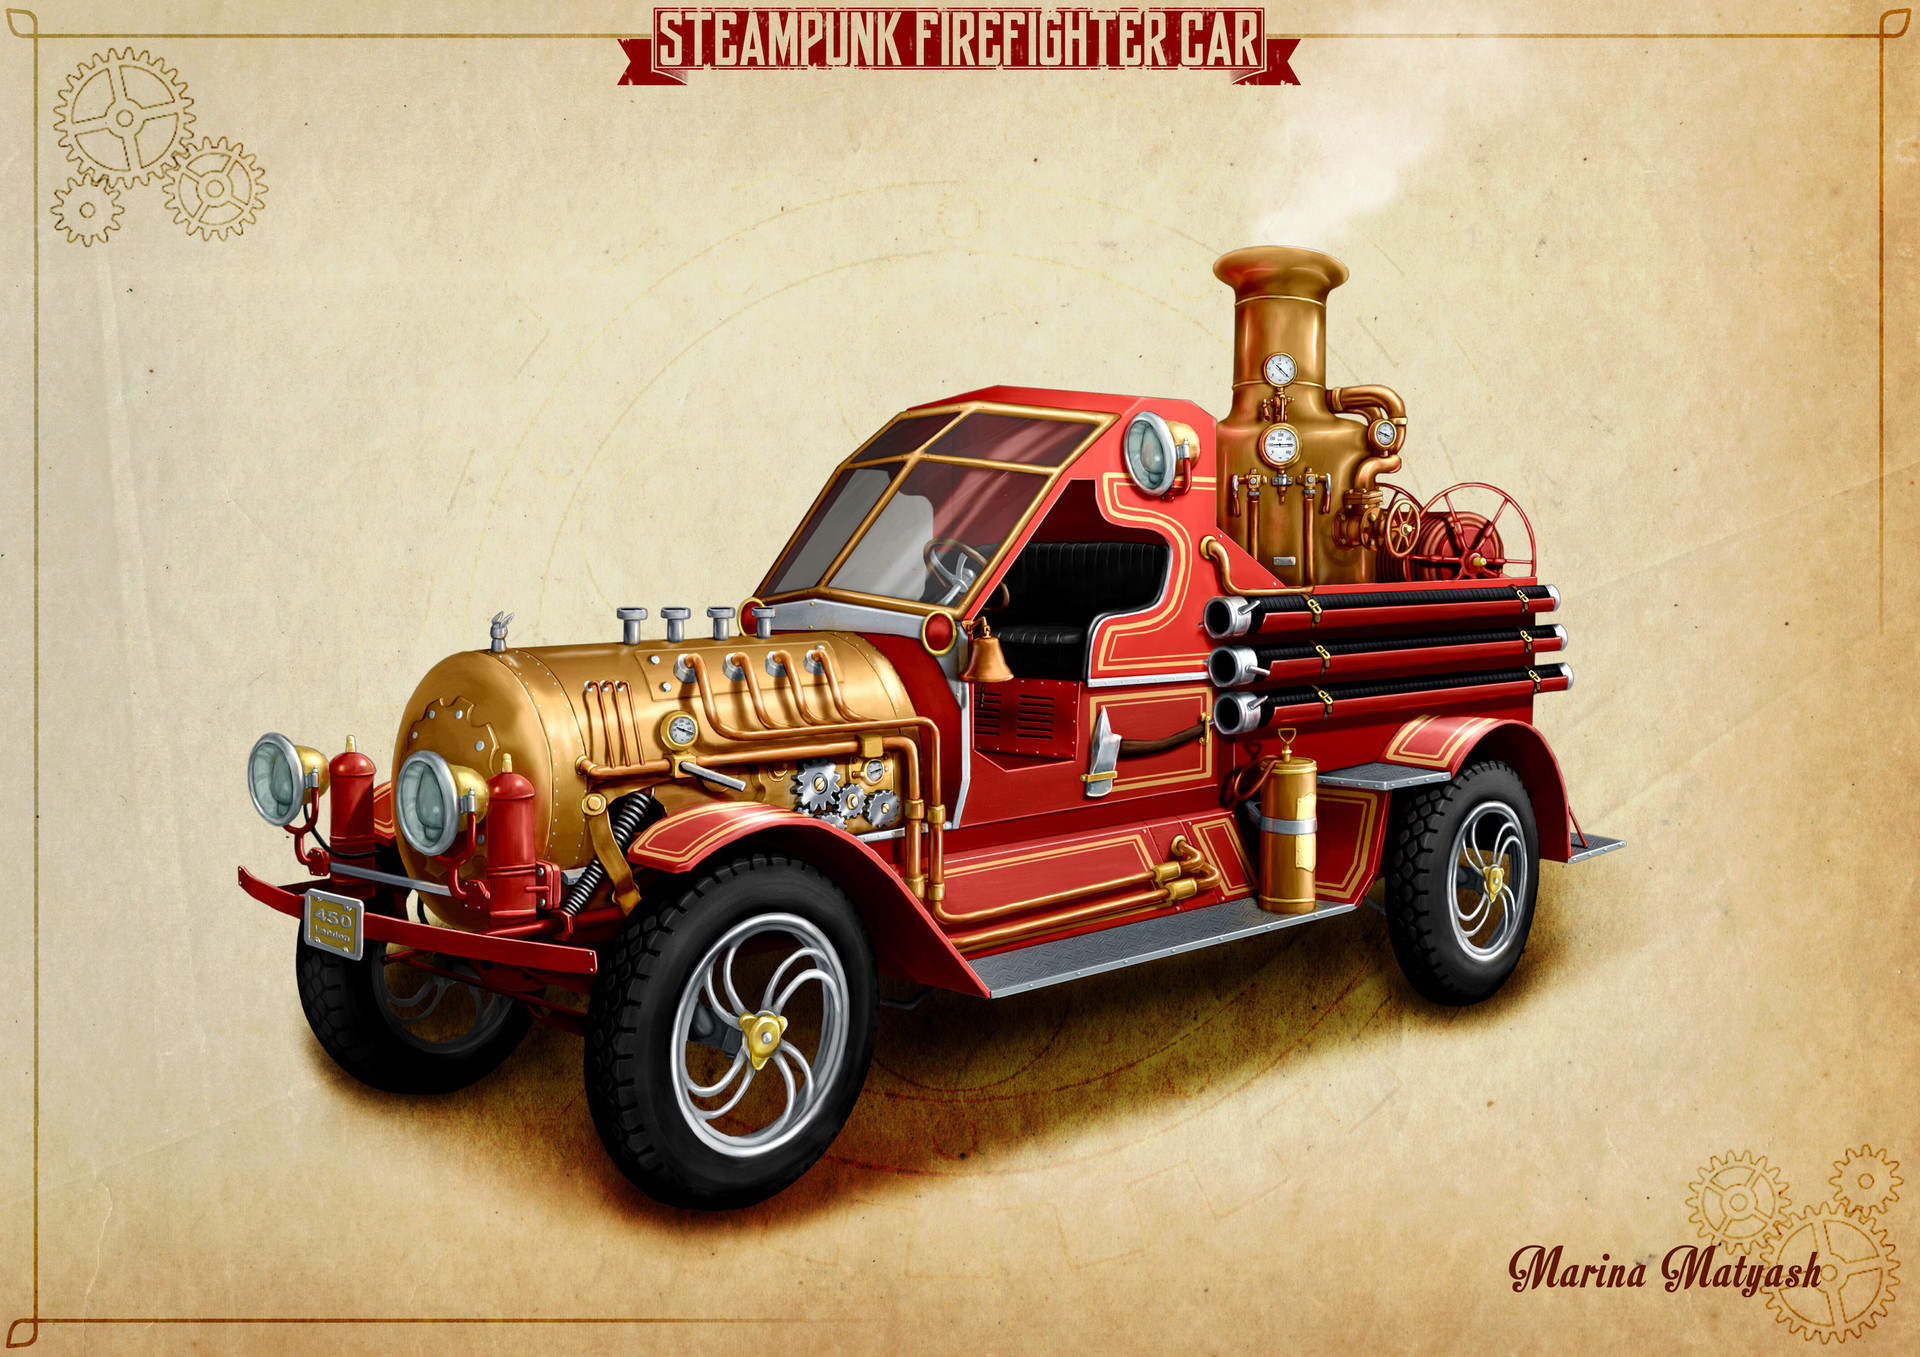 Steampunk Firecar